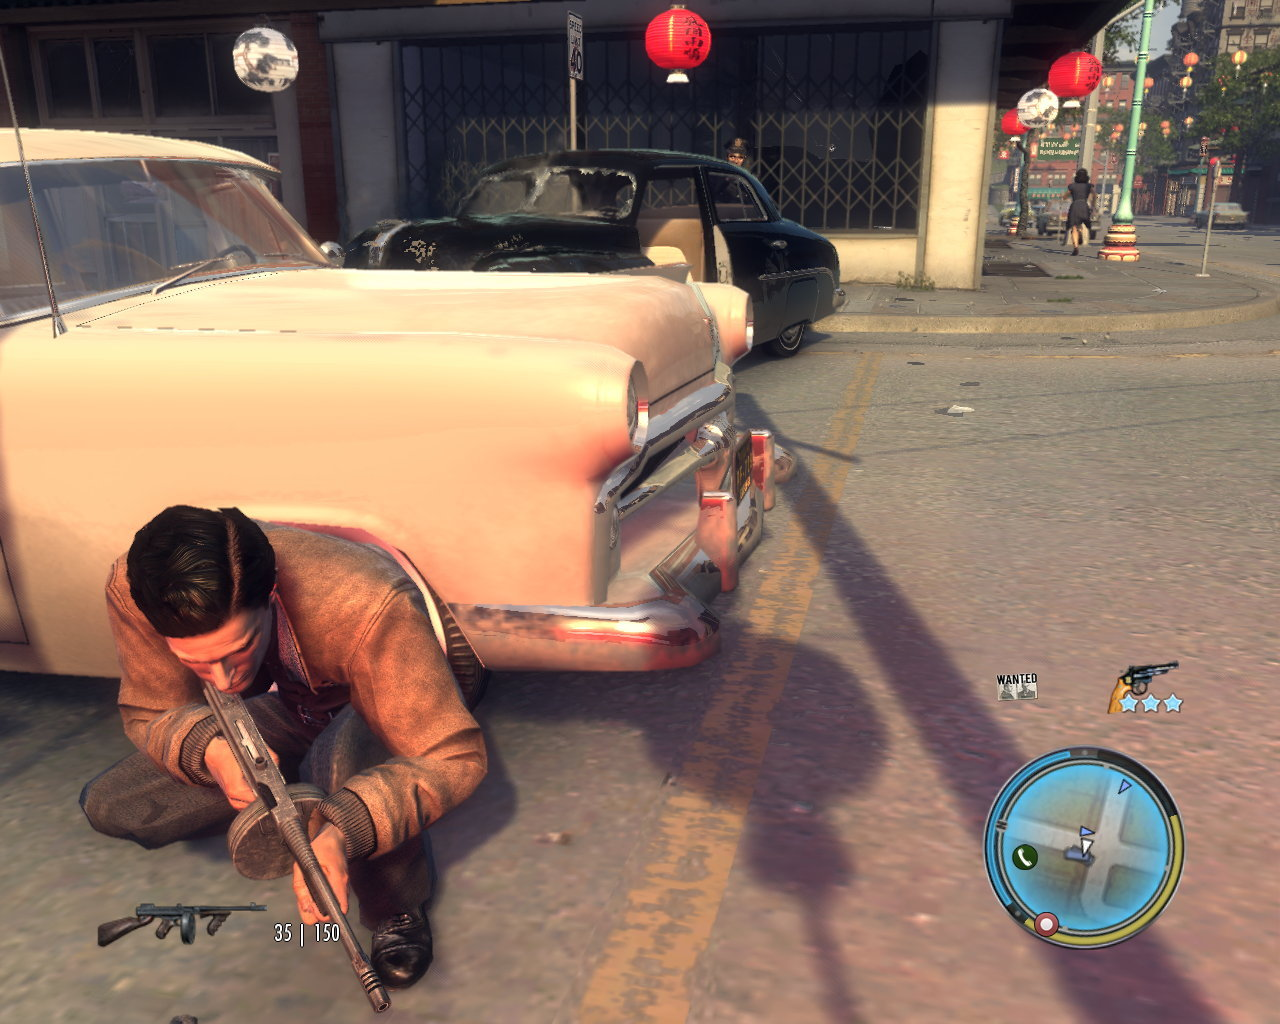 This item is incompatible with mafia ii.